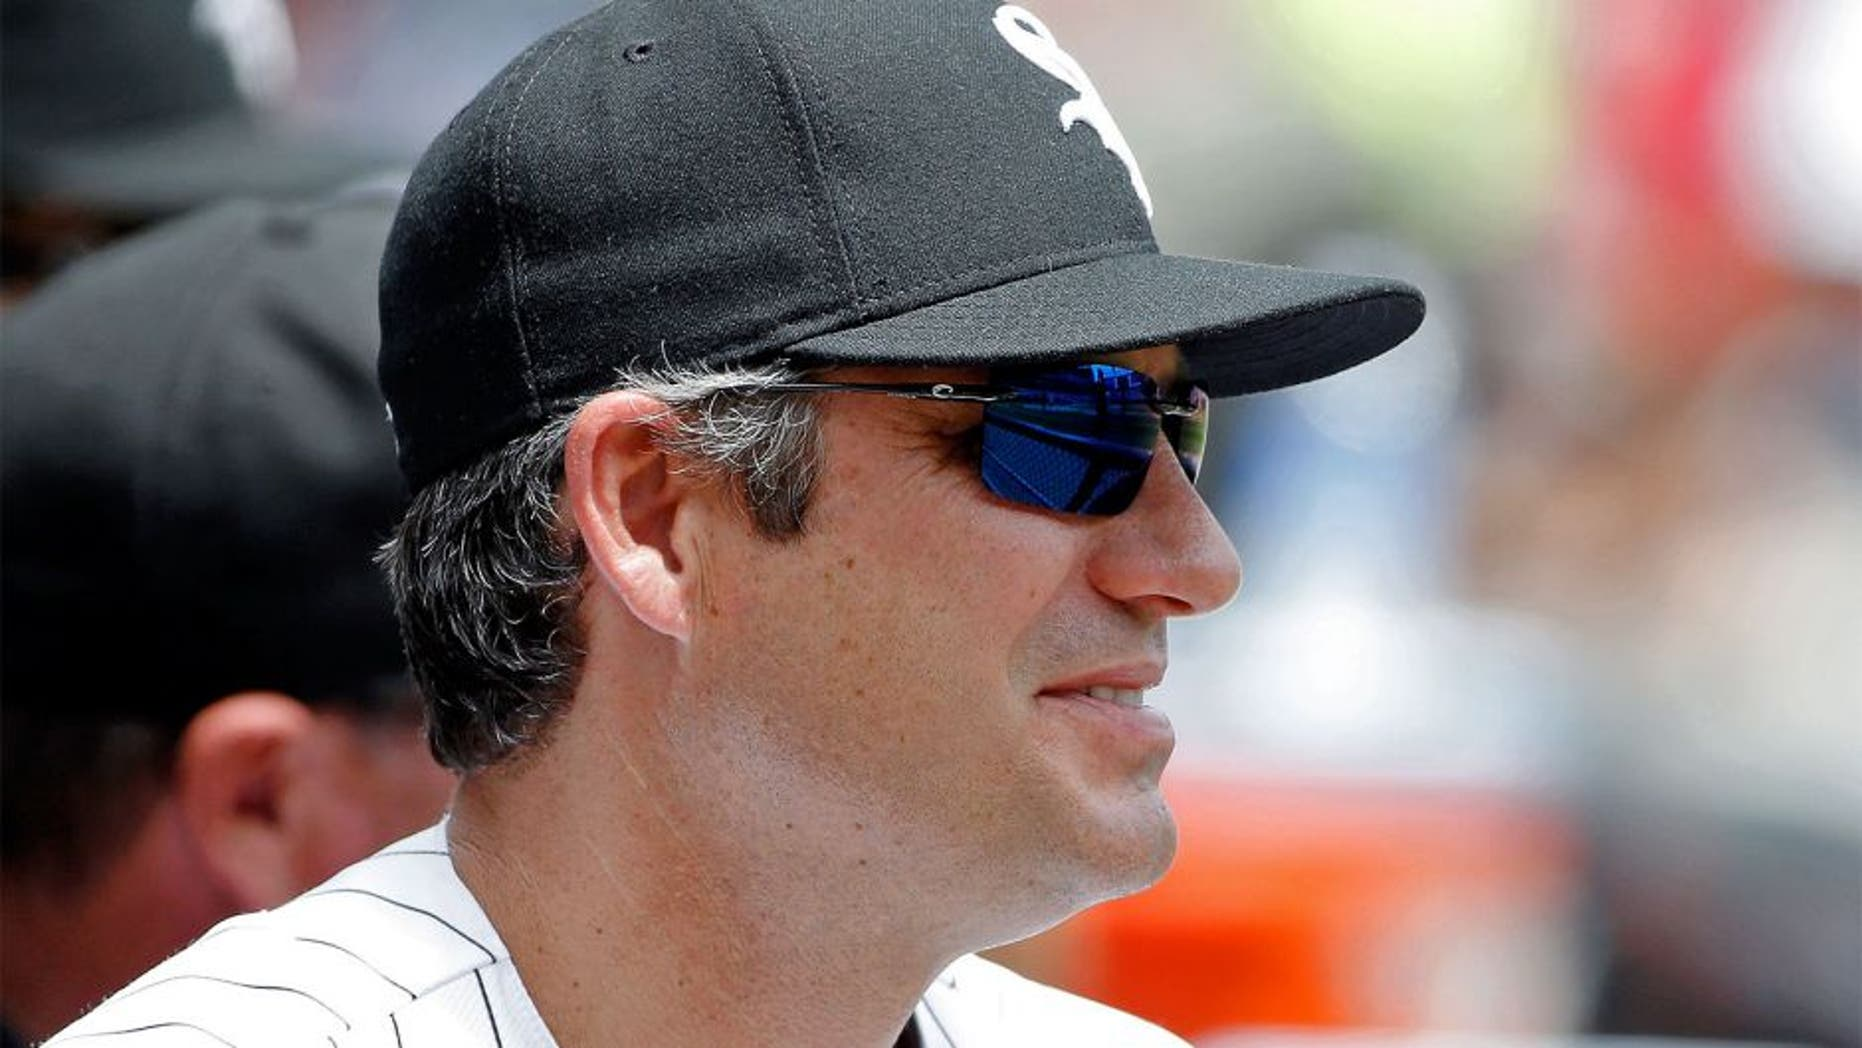 CHICAGO, IL - JUNE 20: Manager Robin Ventura #23 of the Chicago White Sox in the dugout during the second inning during the game against the Texas Rangers at U.S. Cellular Field on June 20, 2015 in Chicago, Illinois. (Photo by Jon Durr/Getty Images)